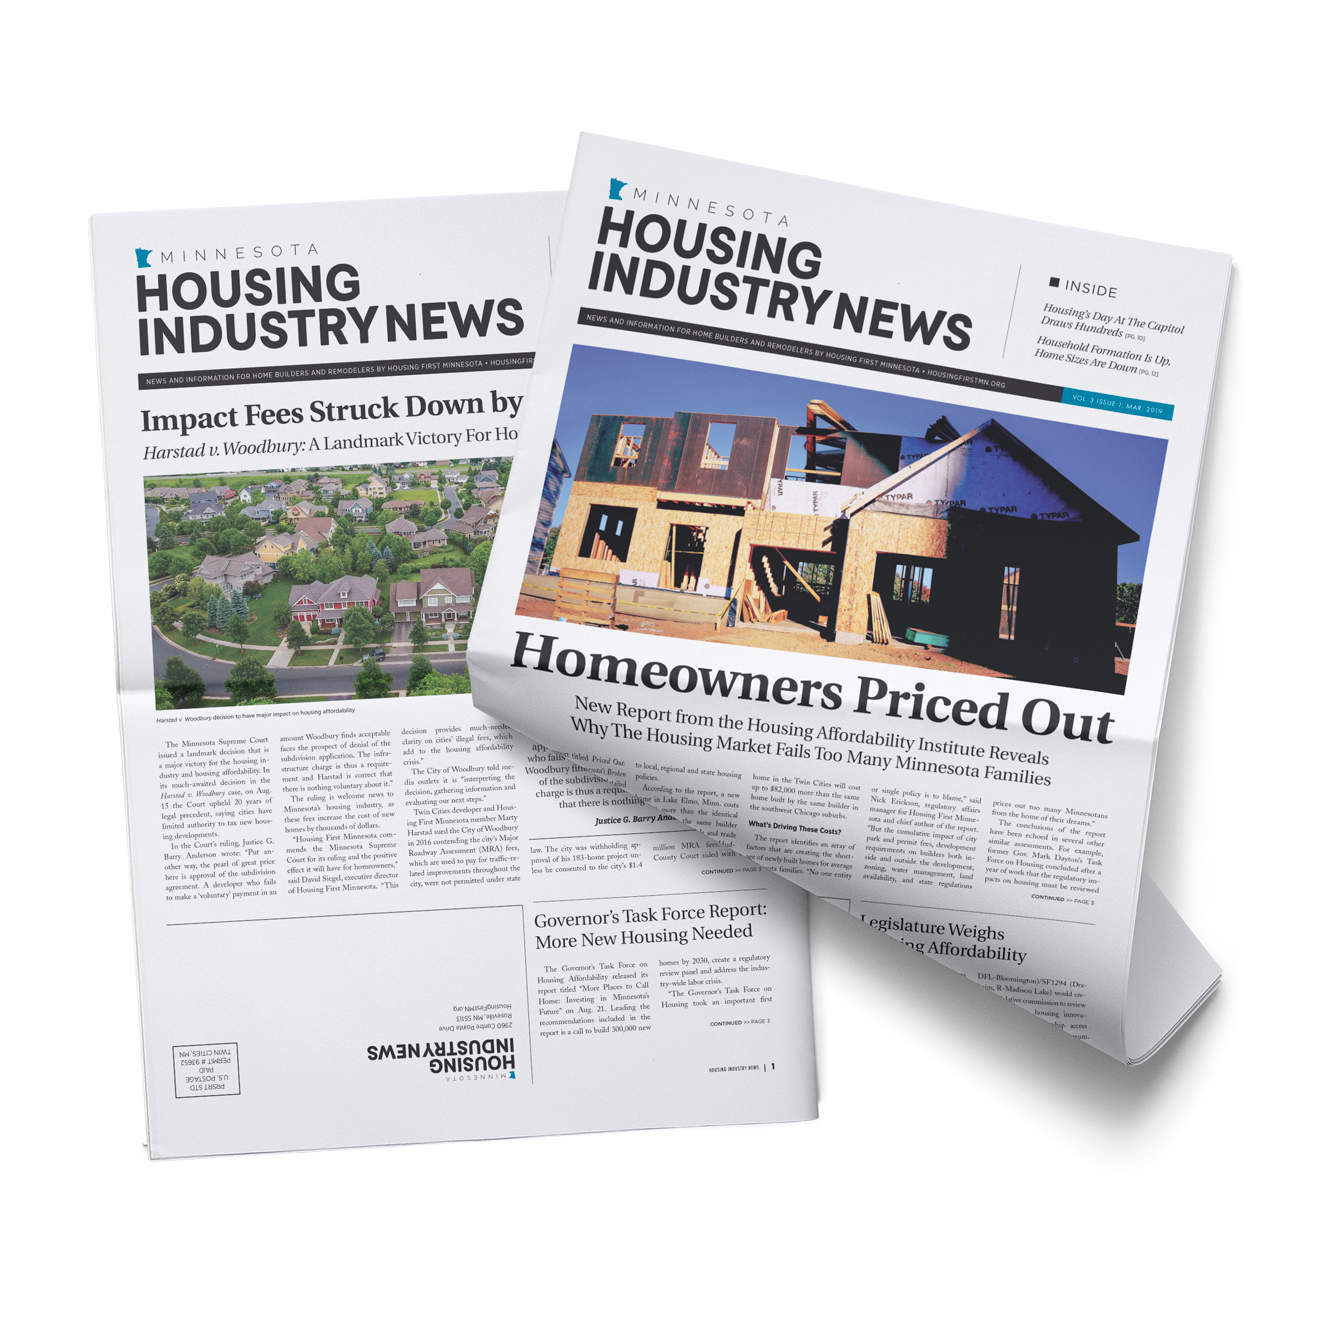 HousingIndustryNews-Covers.jpg